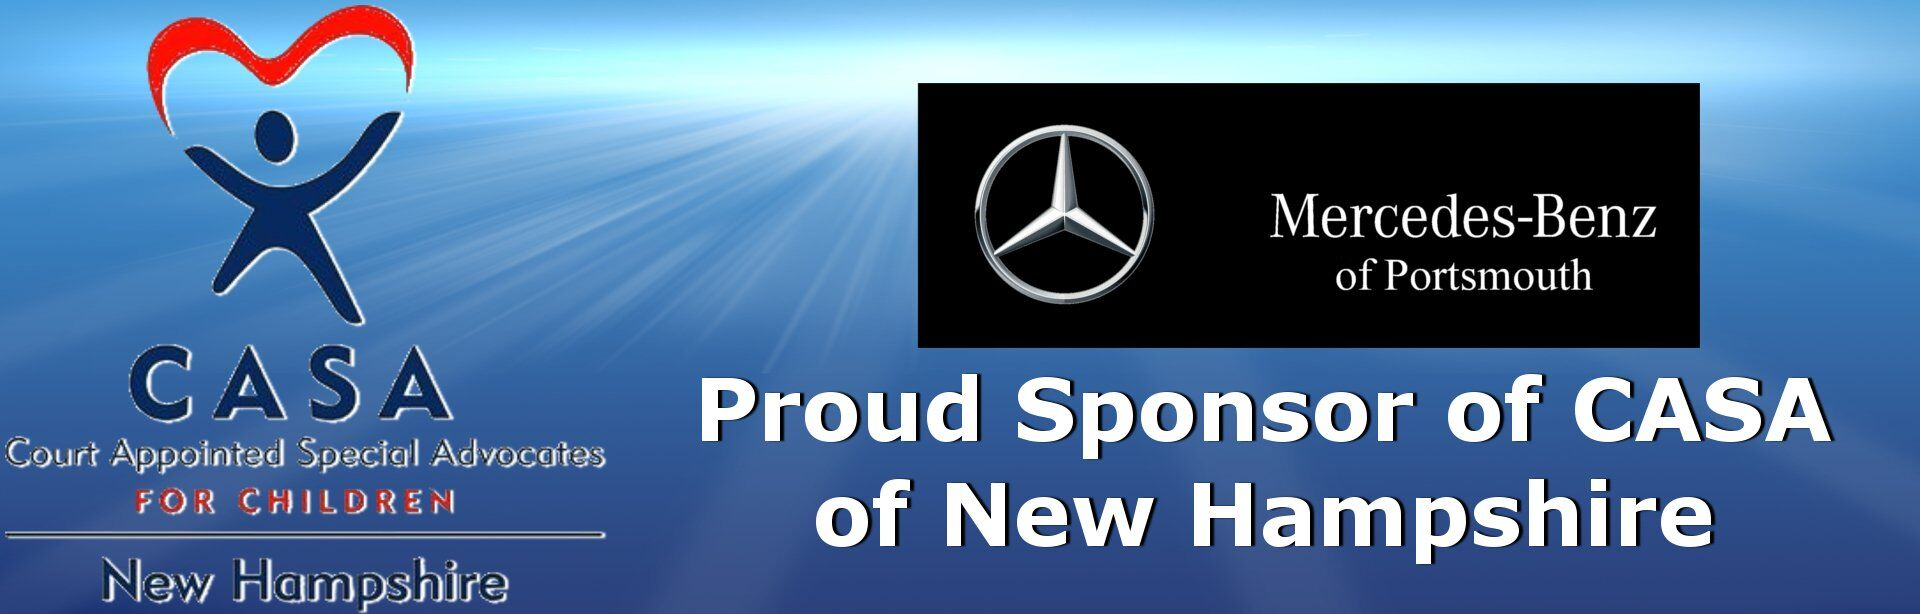 Proud Sponsor of CASA of New Hampshire